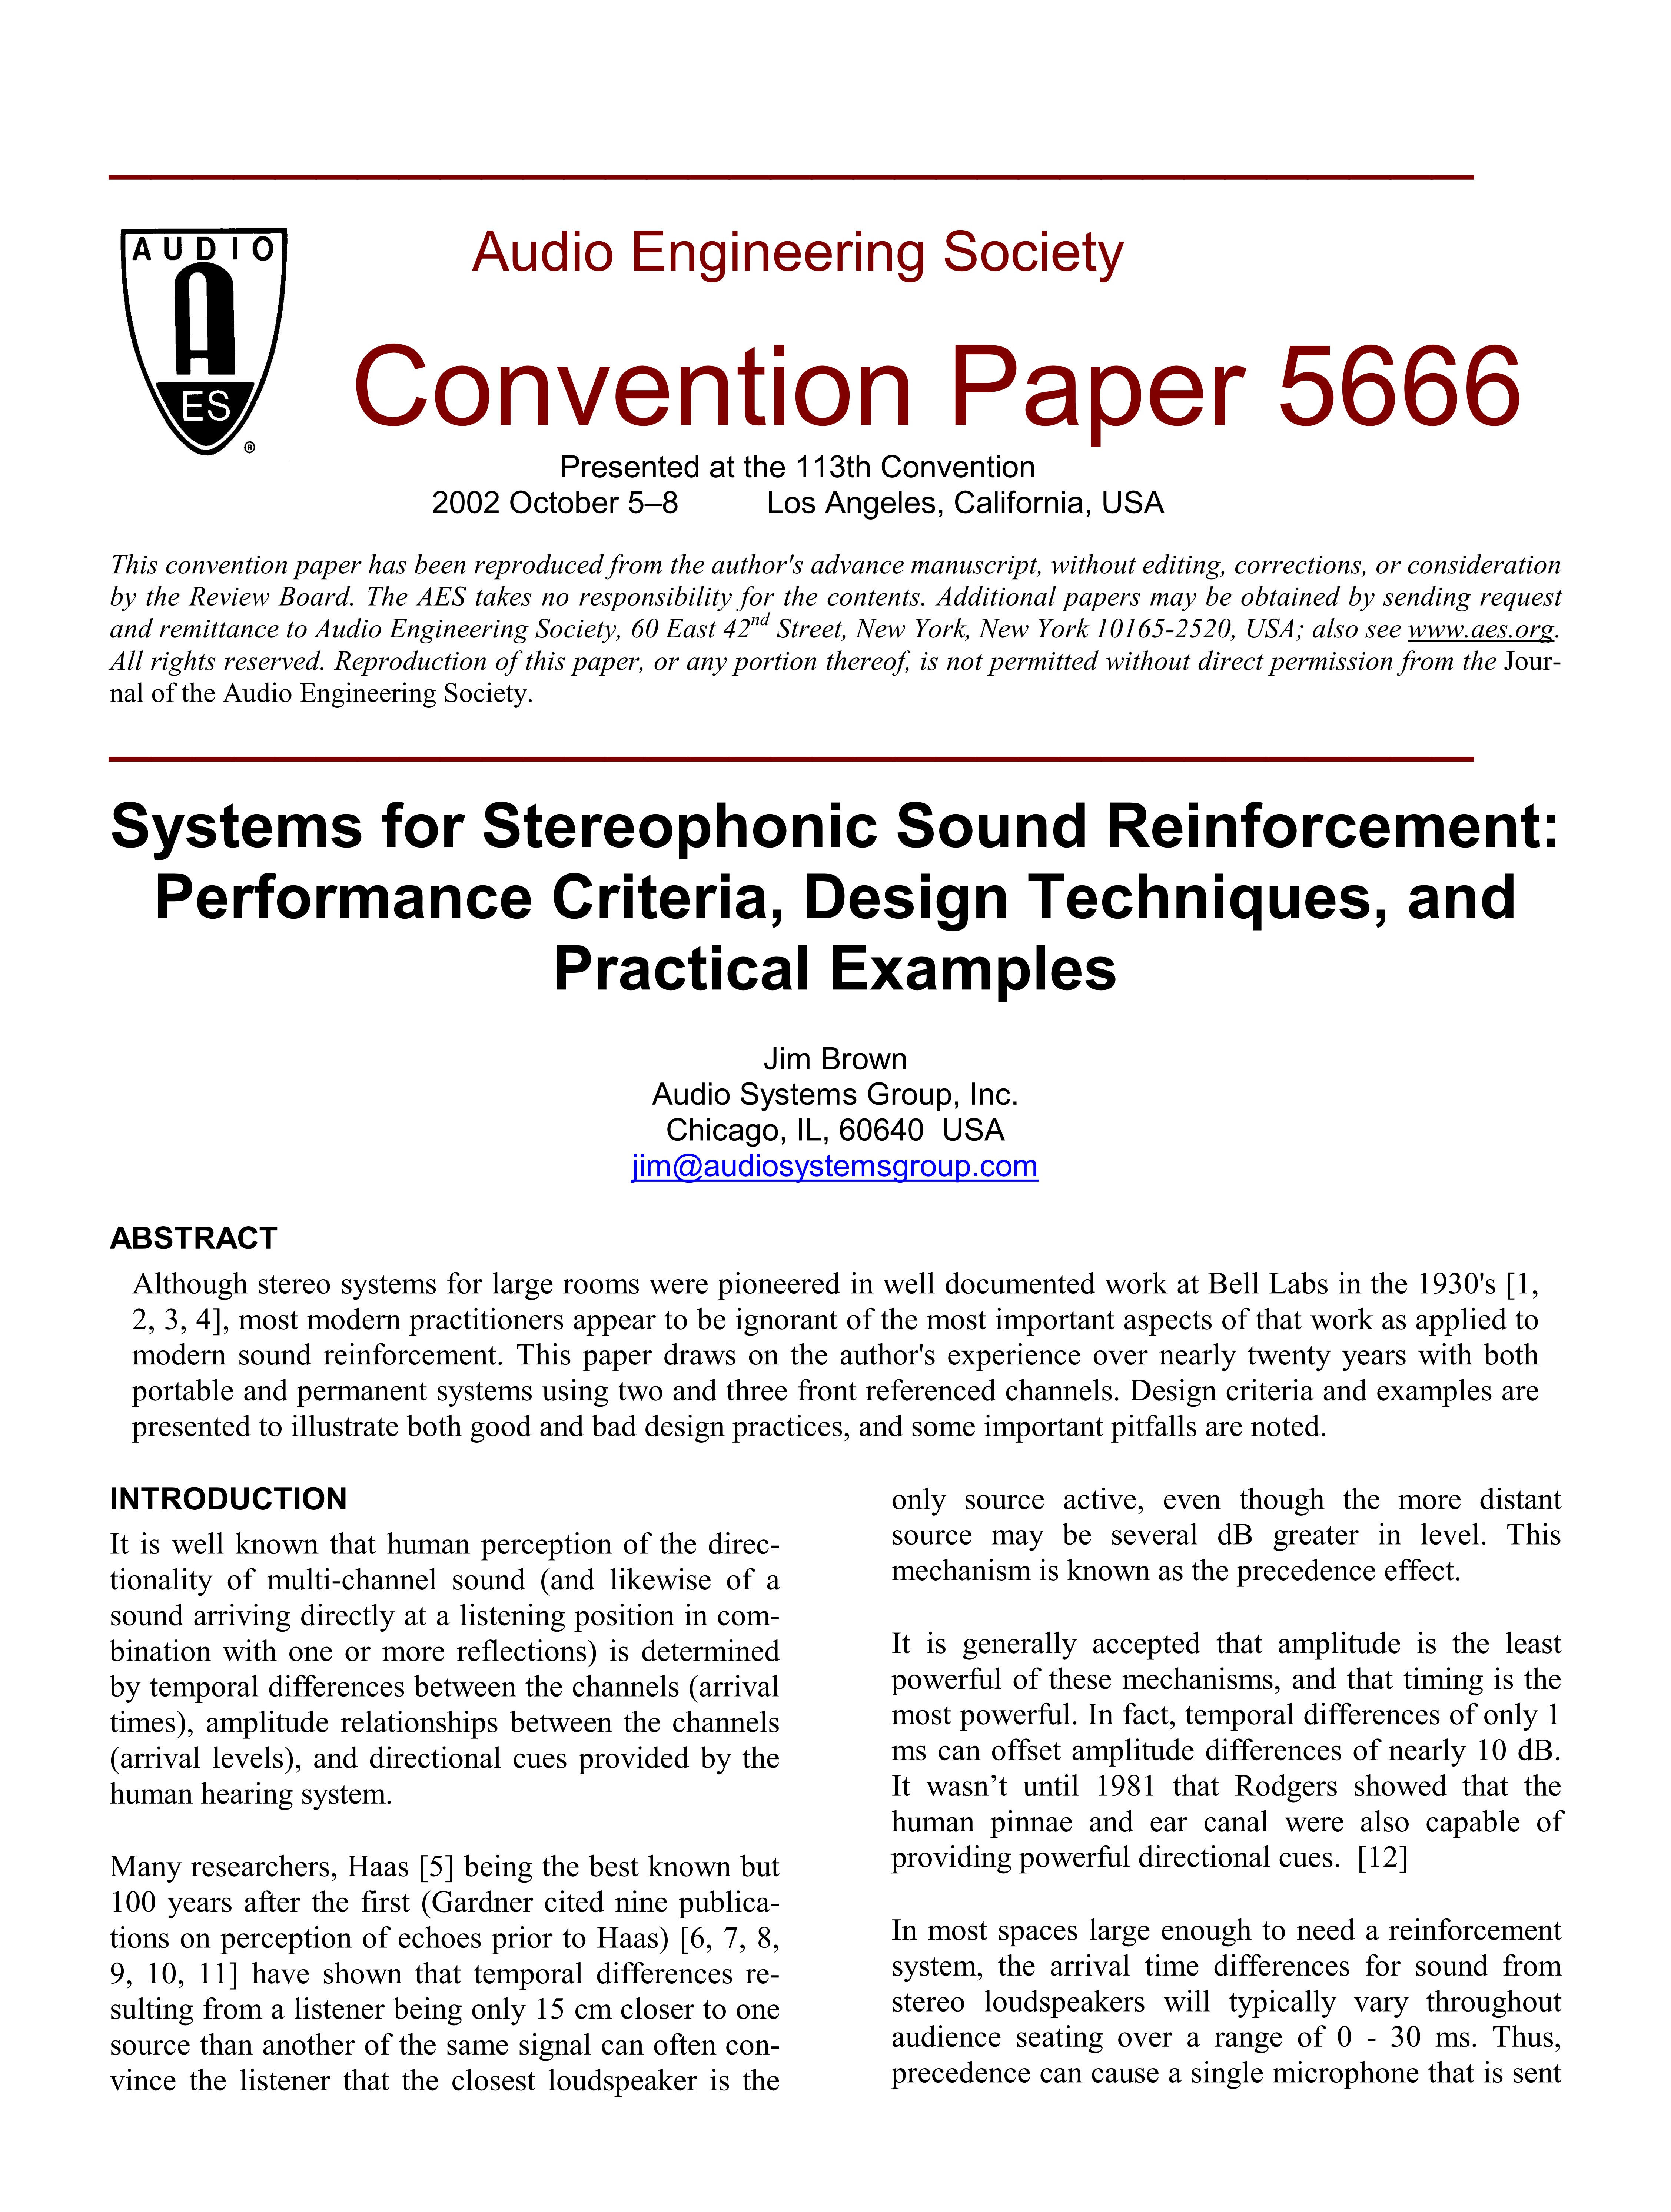 AES E-Library » Systems for Stereo Sound Reinforcement